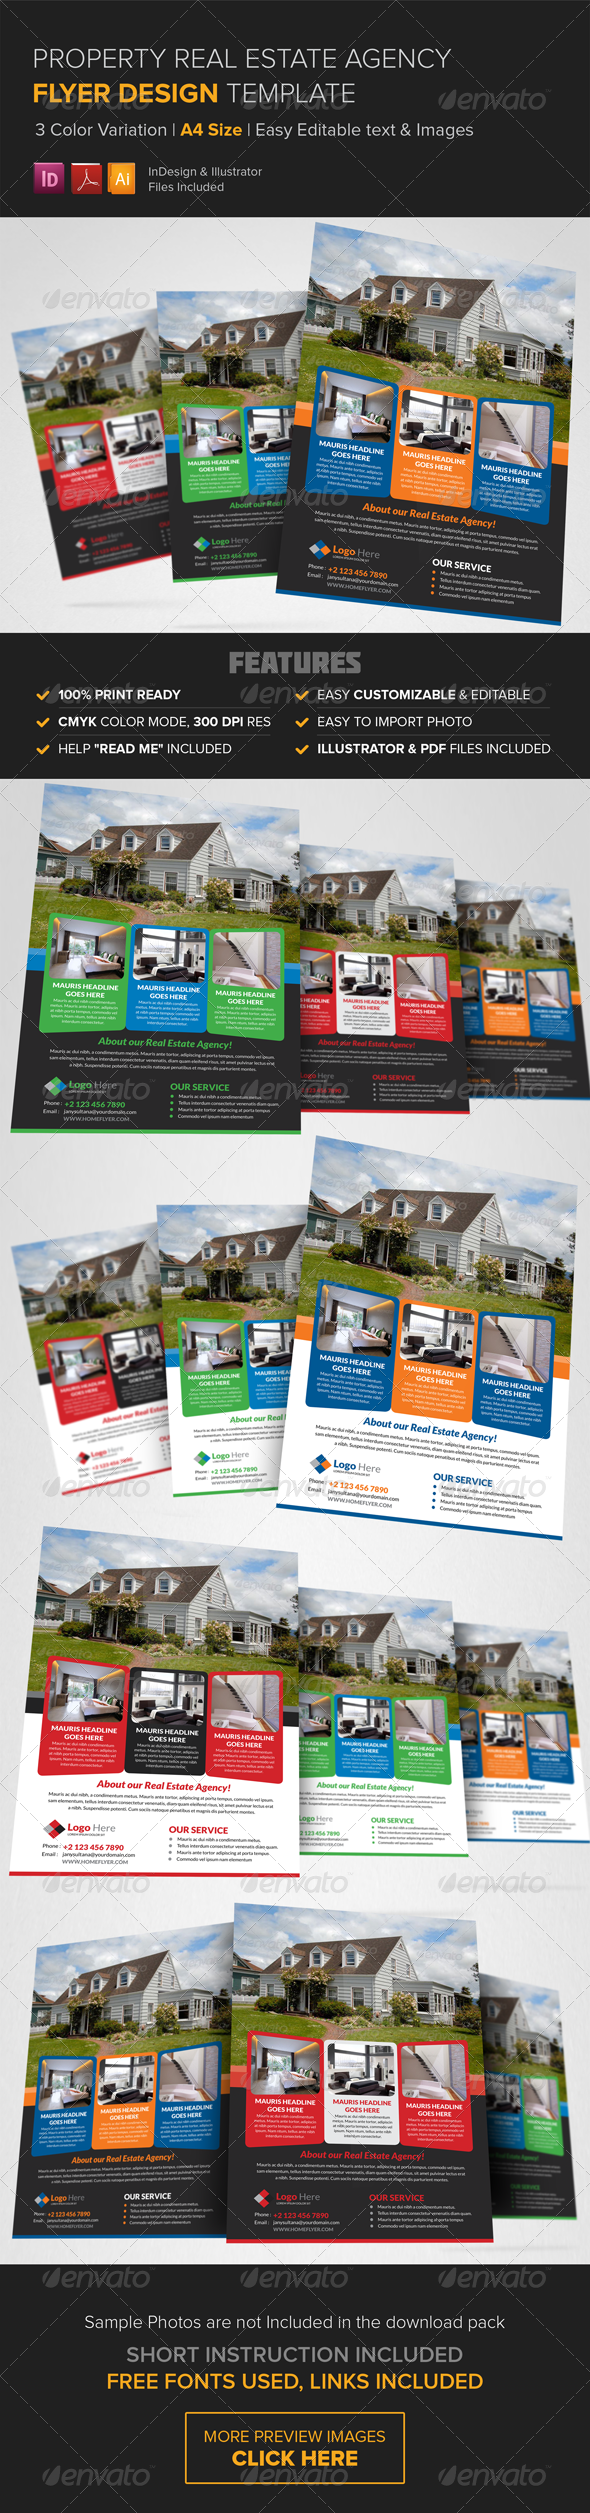 Property Real Estate Agency Flyer Template